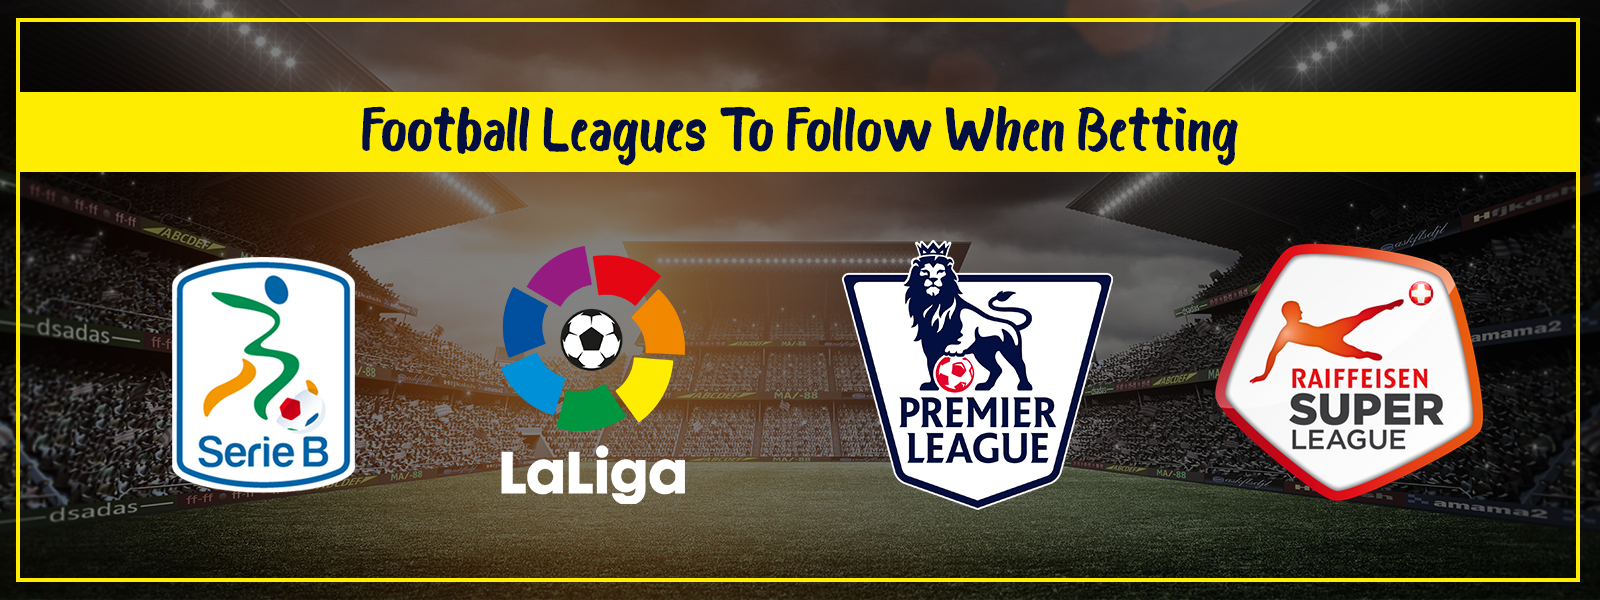 Football Leagues To Follow When Making A Bet